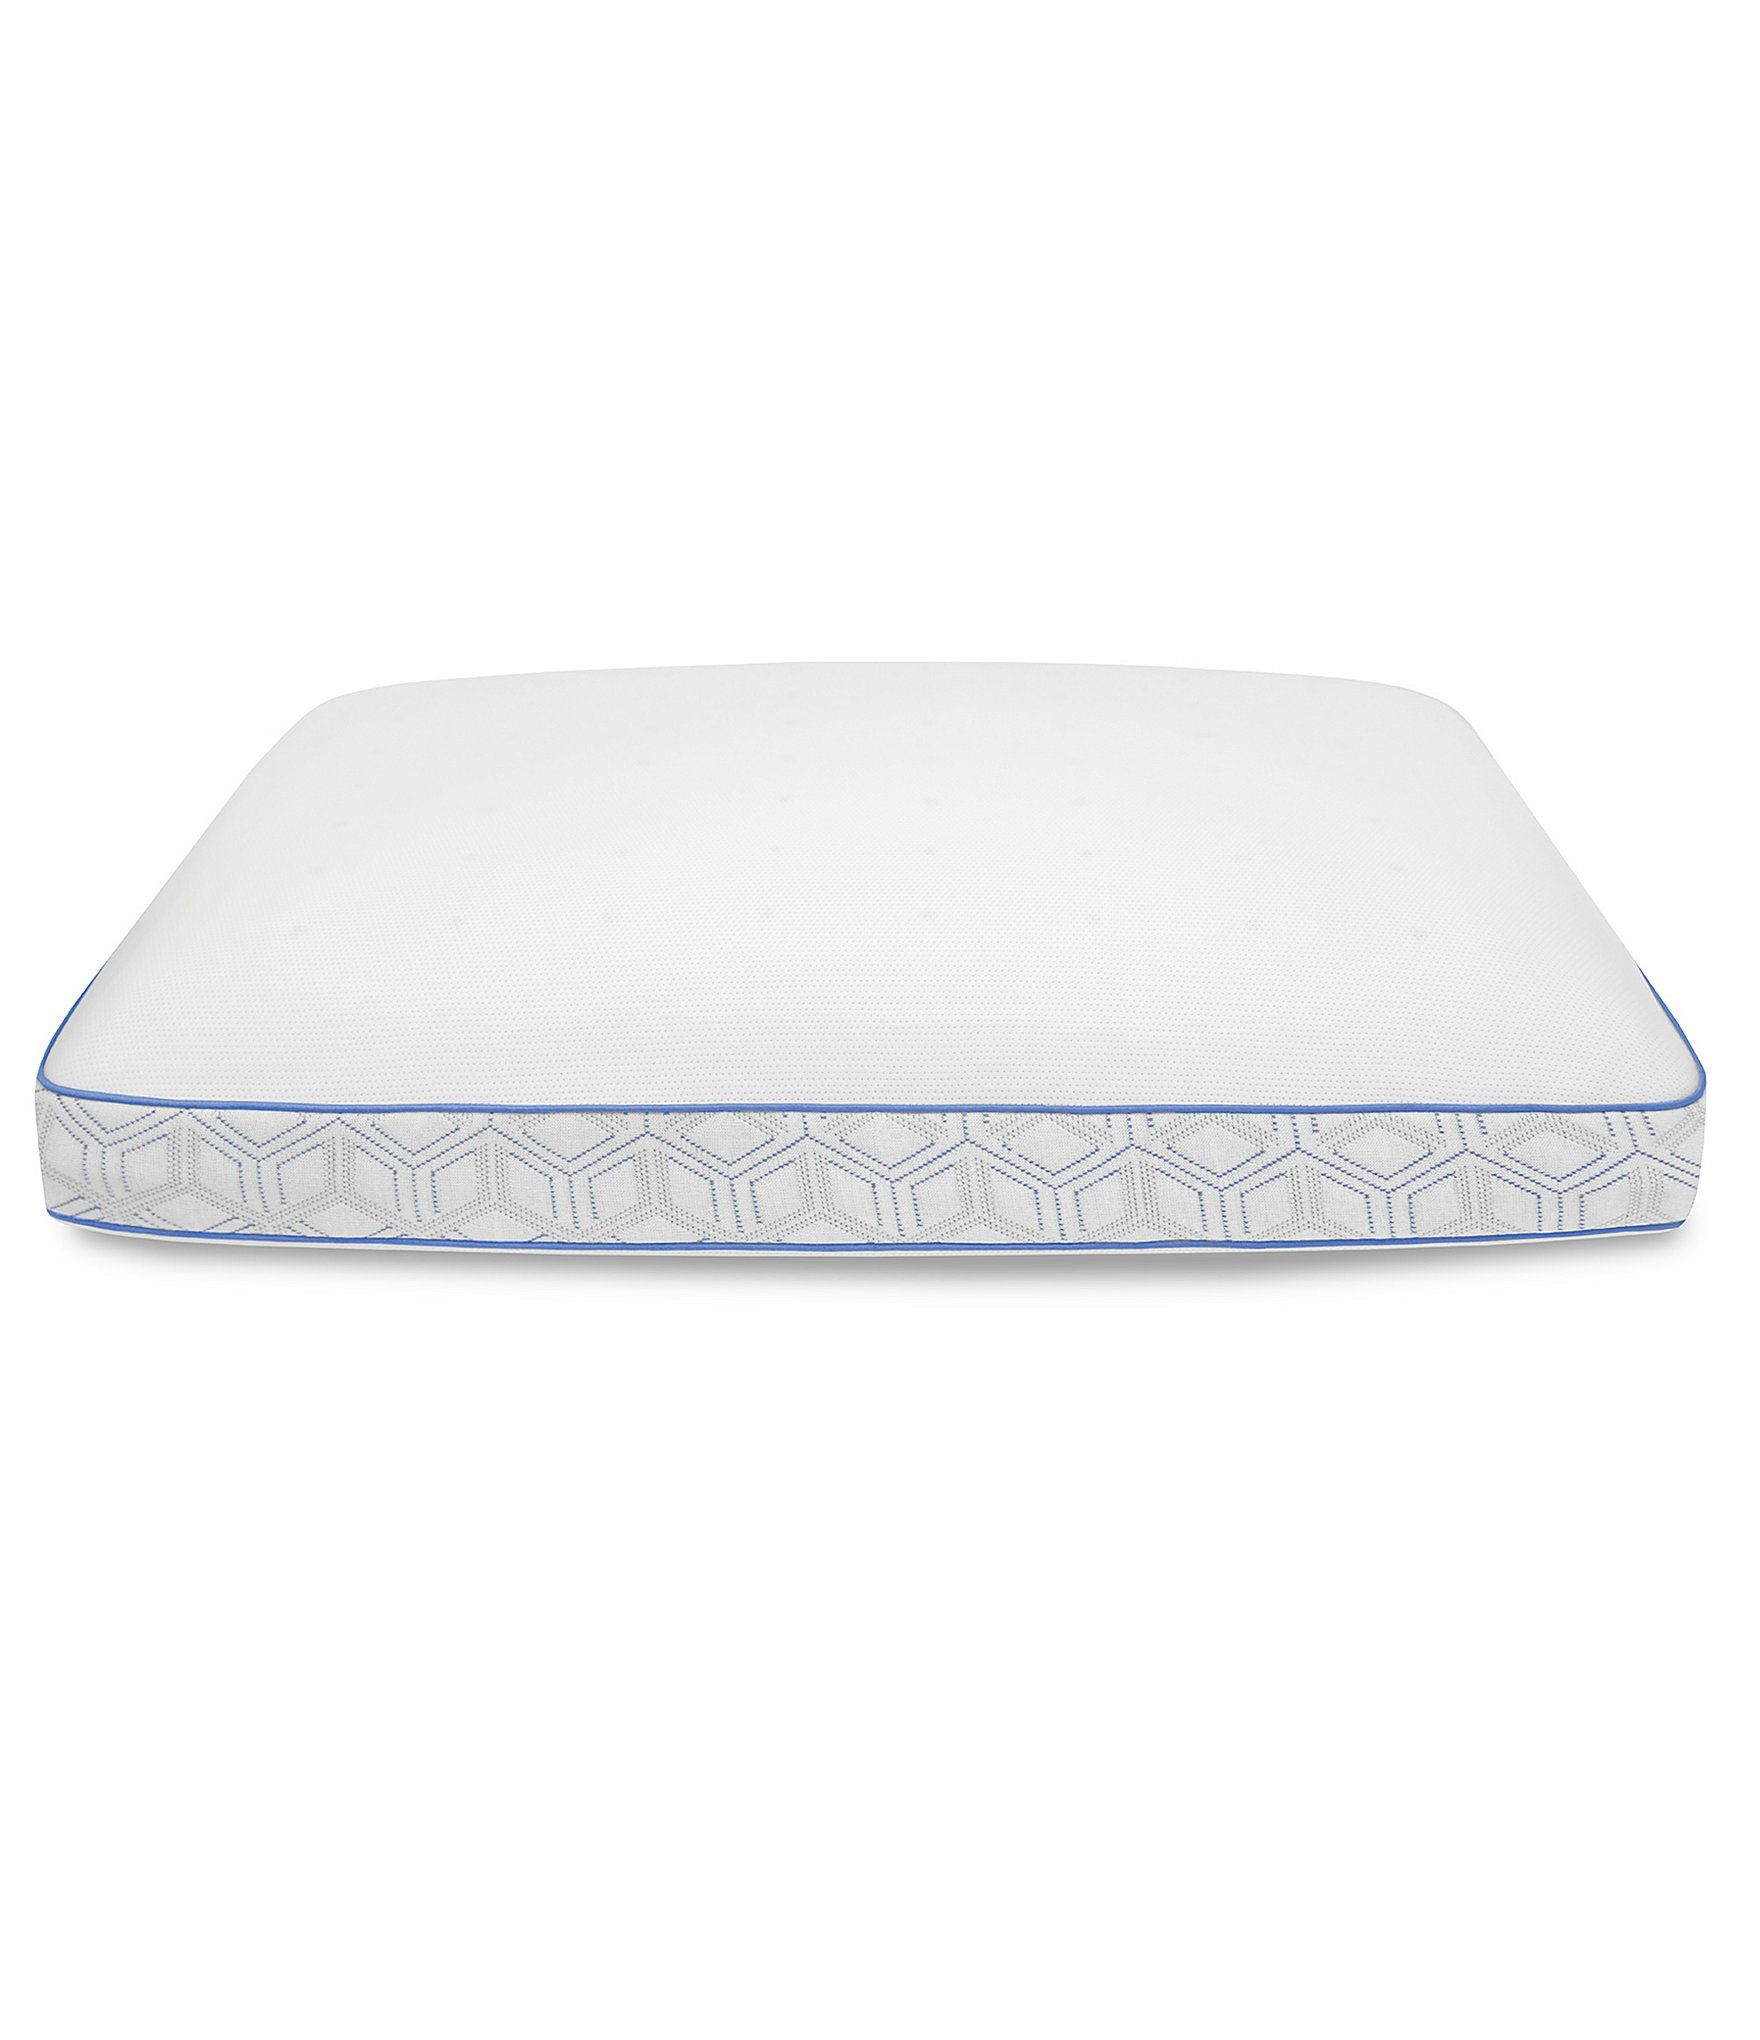 Sensorpedic Cool Coat Gel Memory Foam Performance Pillow King